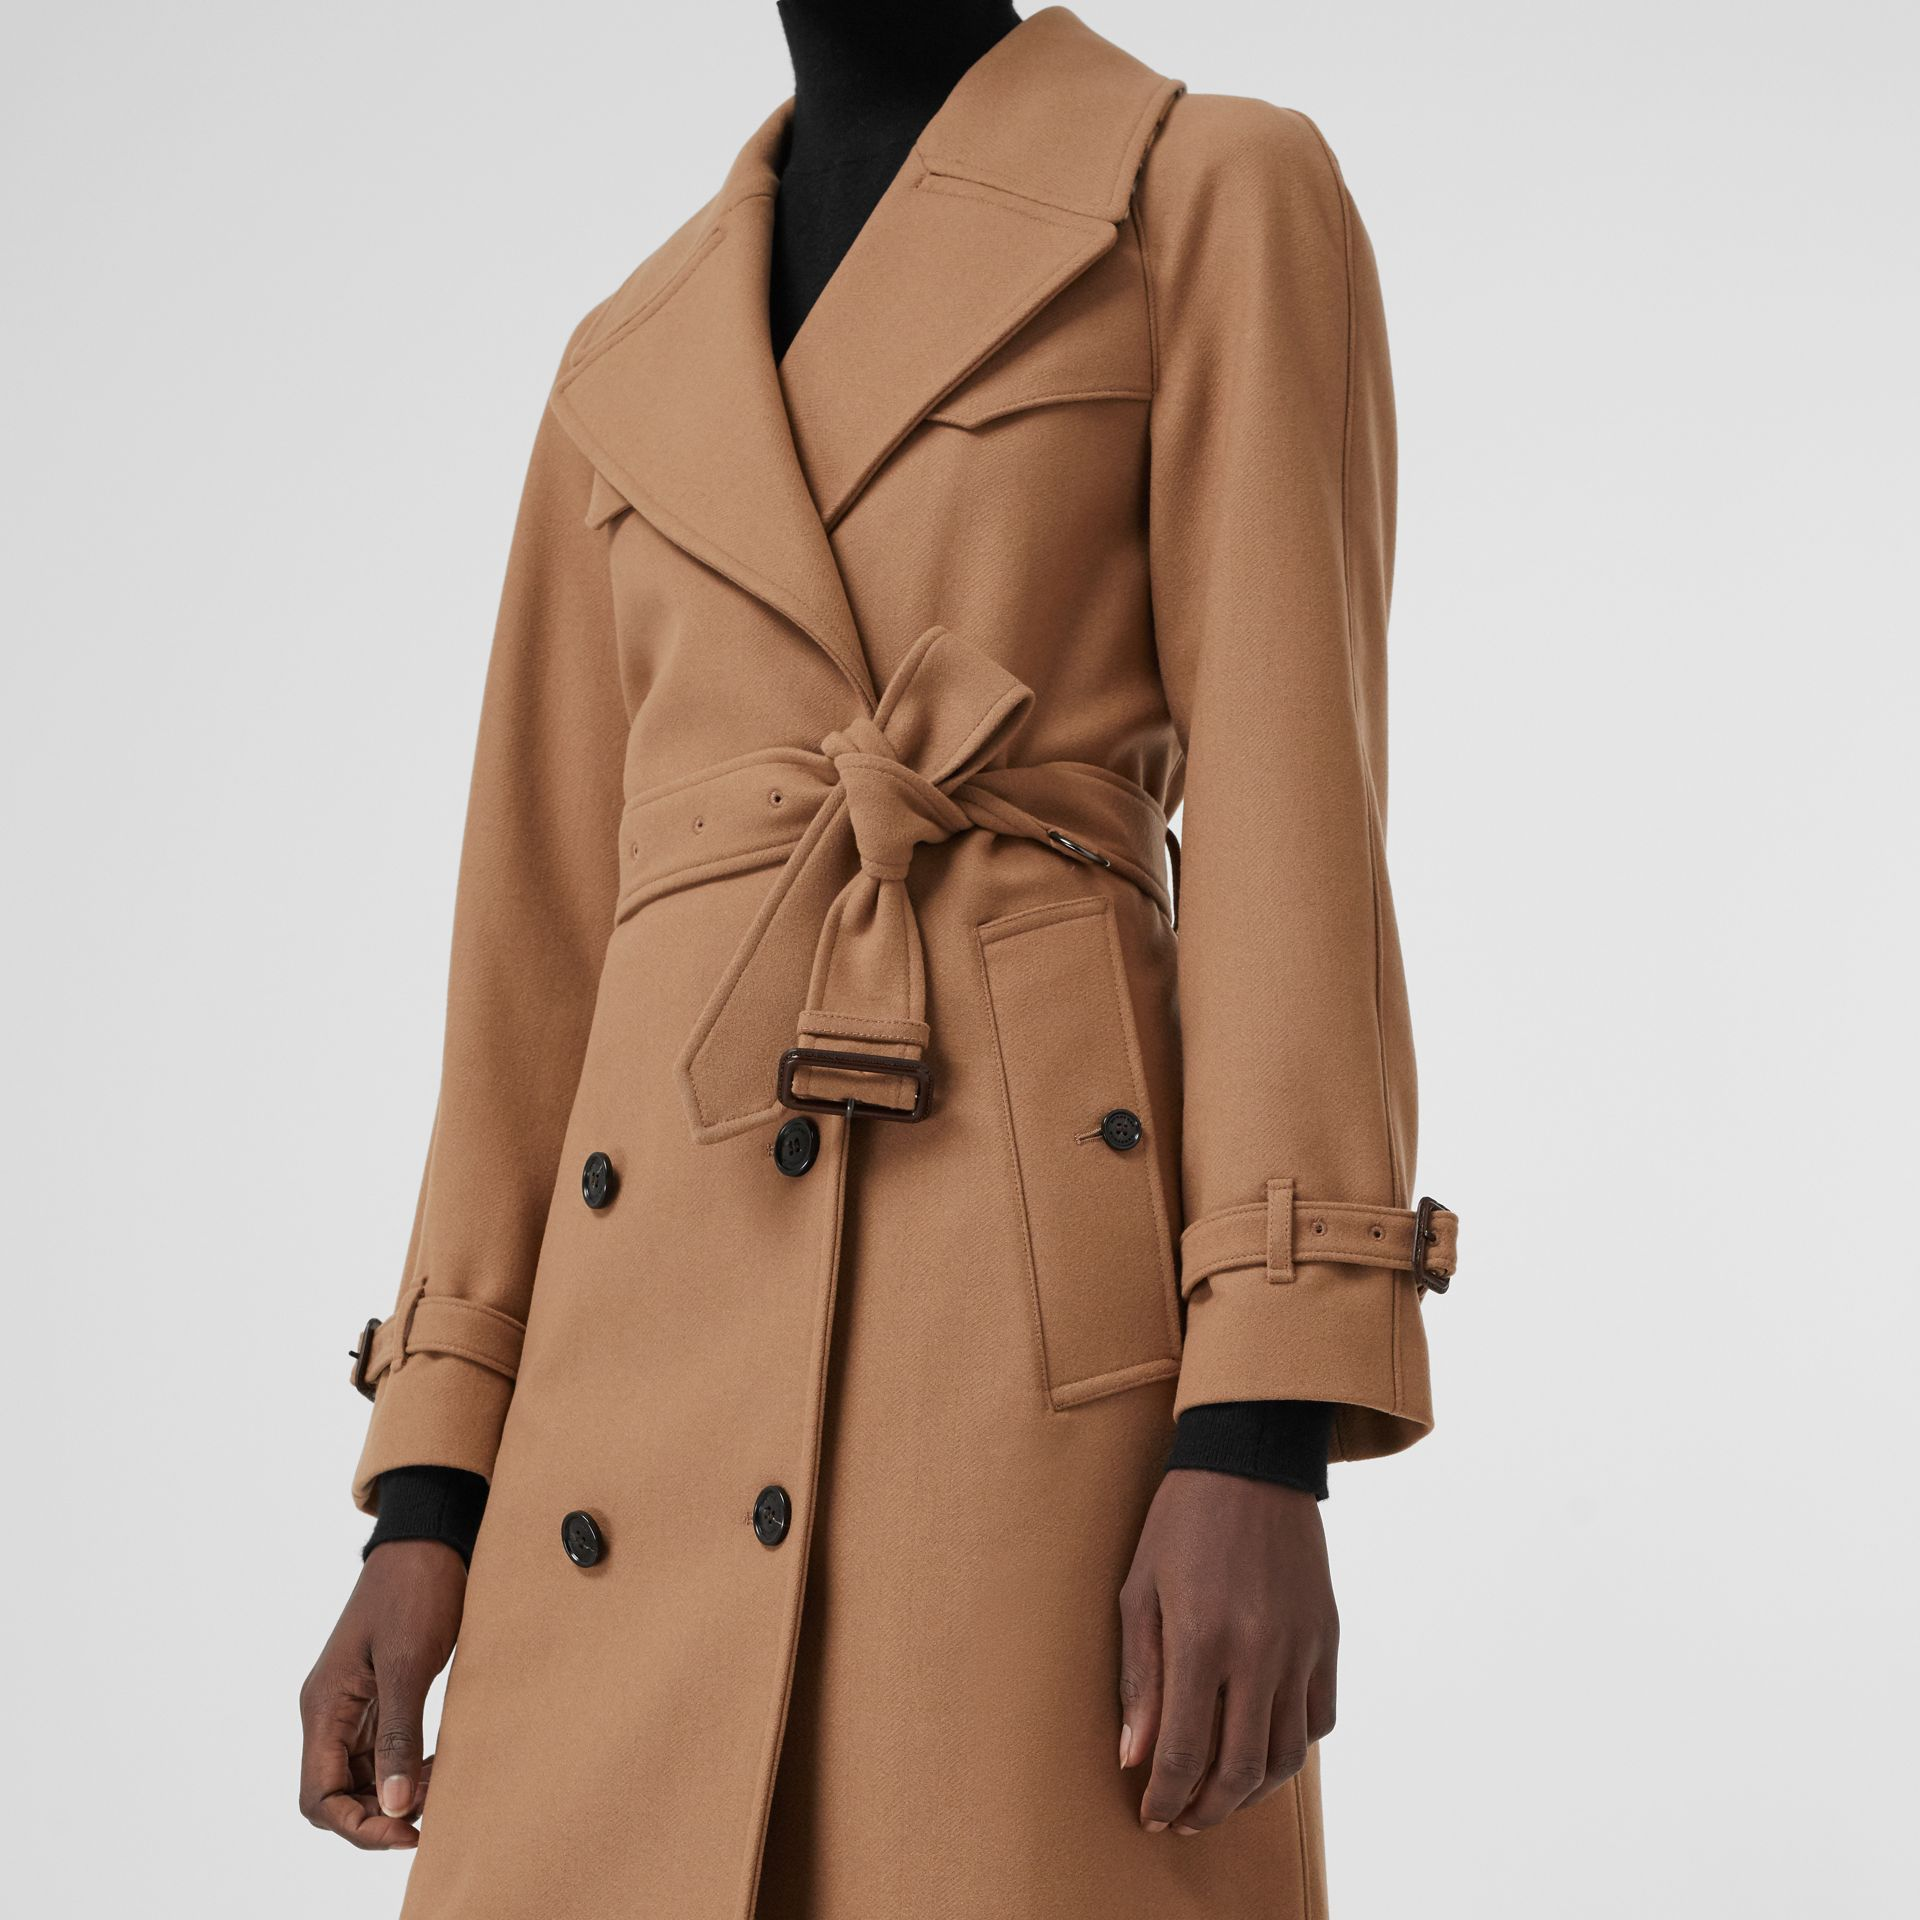 Herringbone Wool Cashmere Blend Trench Coat in Camel - Women | Burberry United Kingdom - gallery image 3